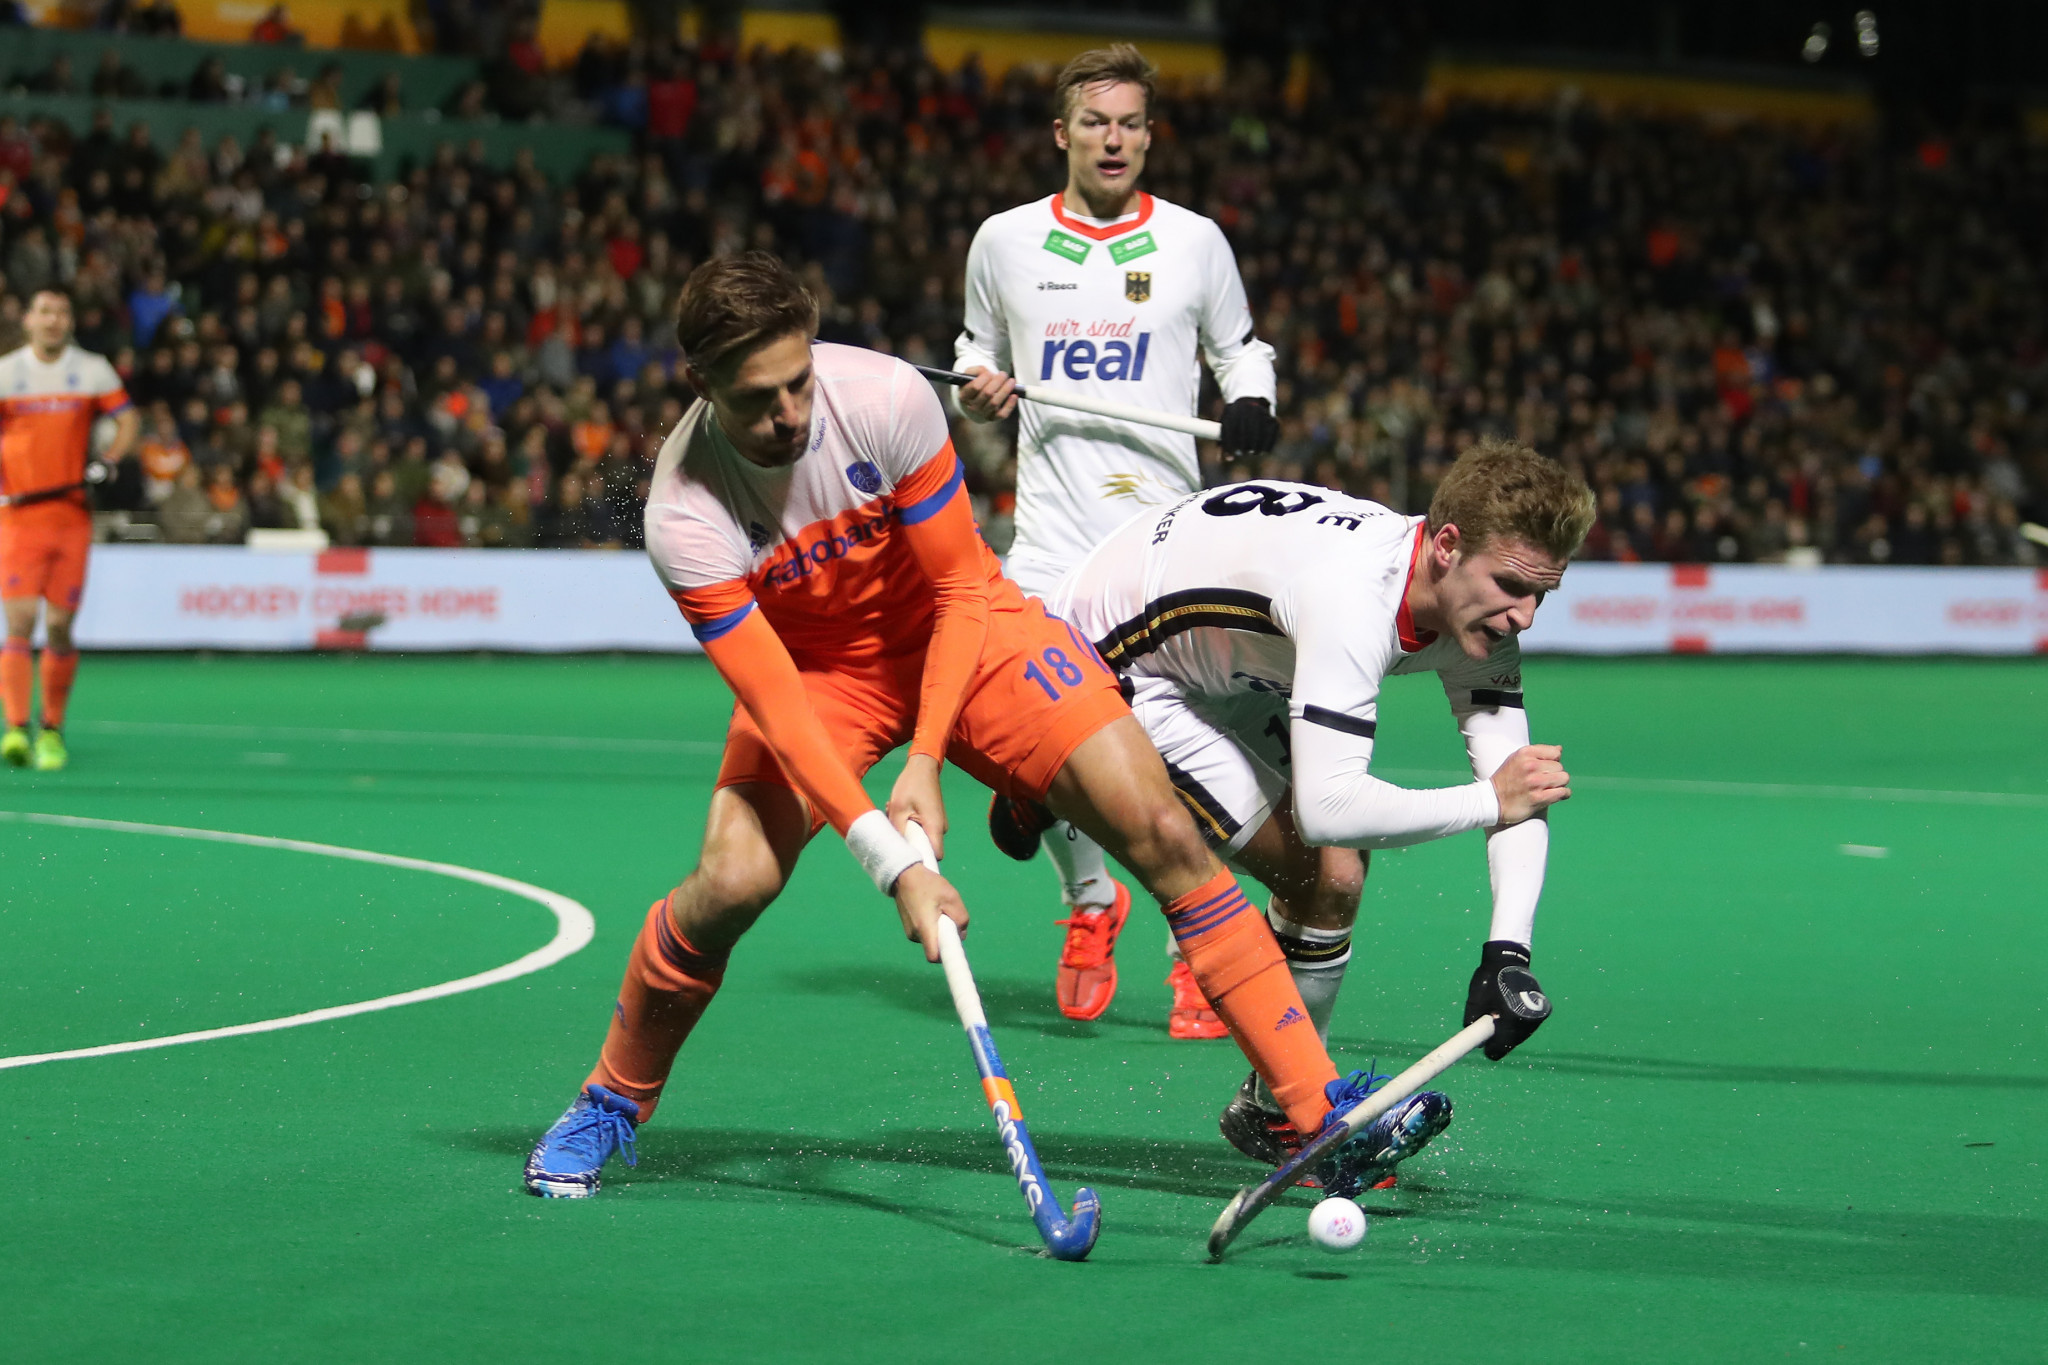 Germany withheld severe Dutch pressure to earn a 1-0 win in Rotterdam ©Getty Images